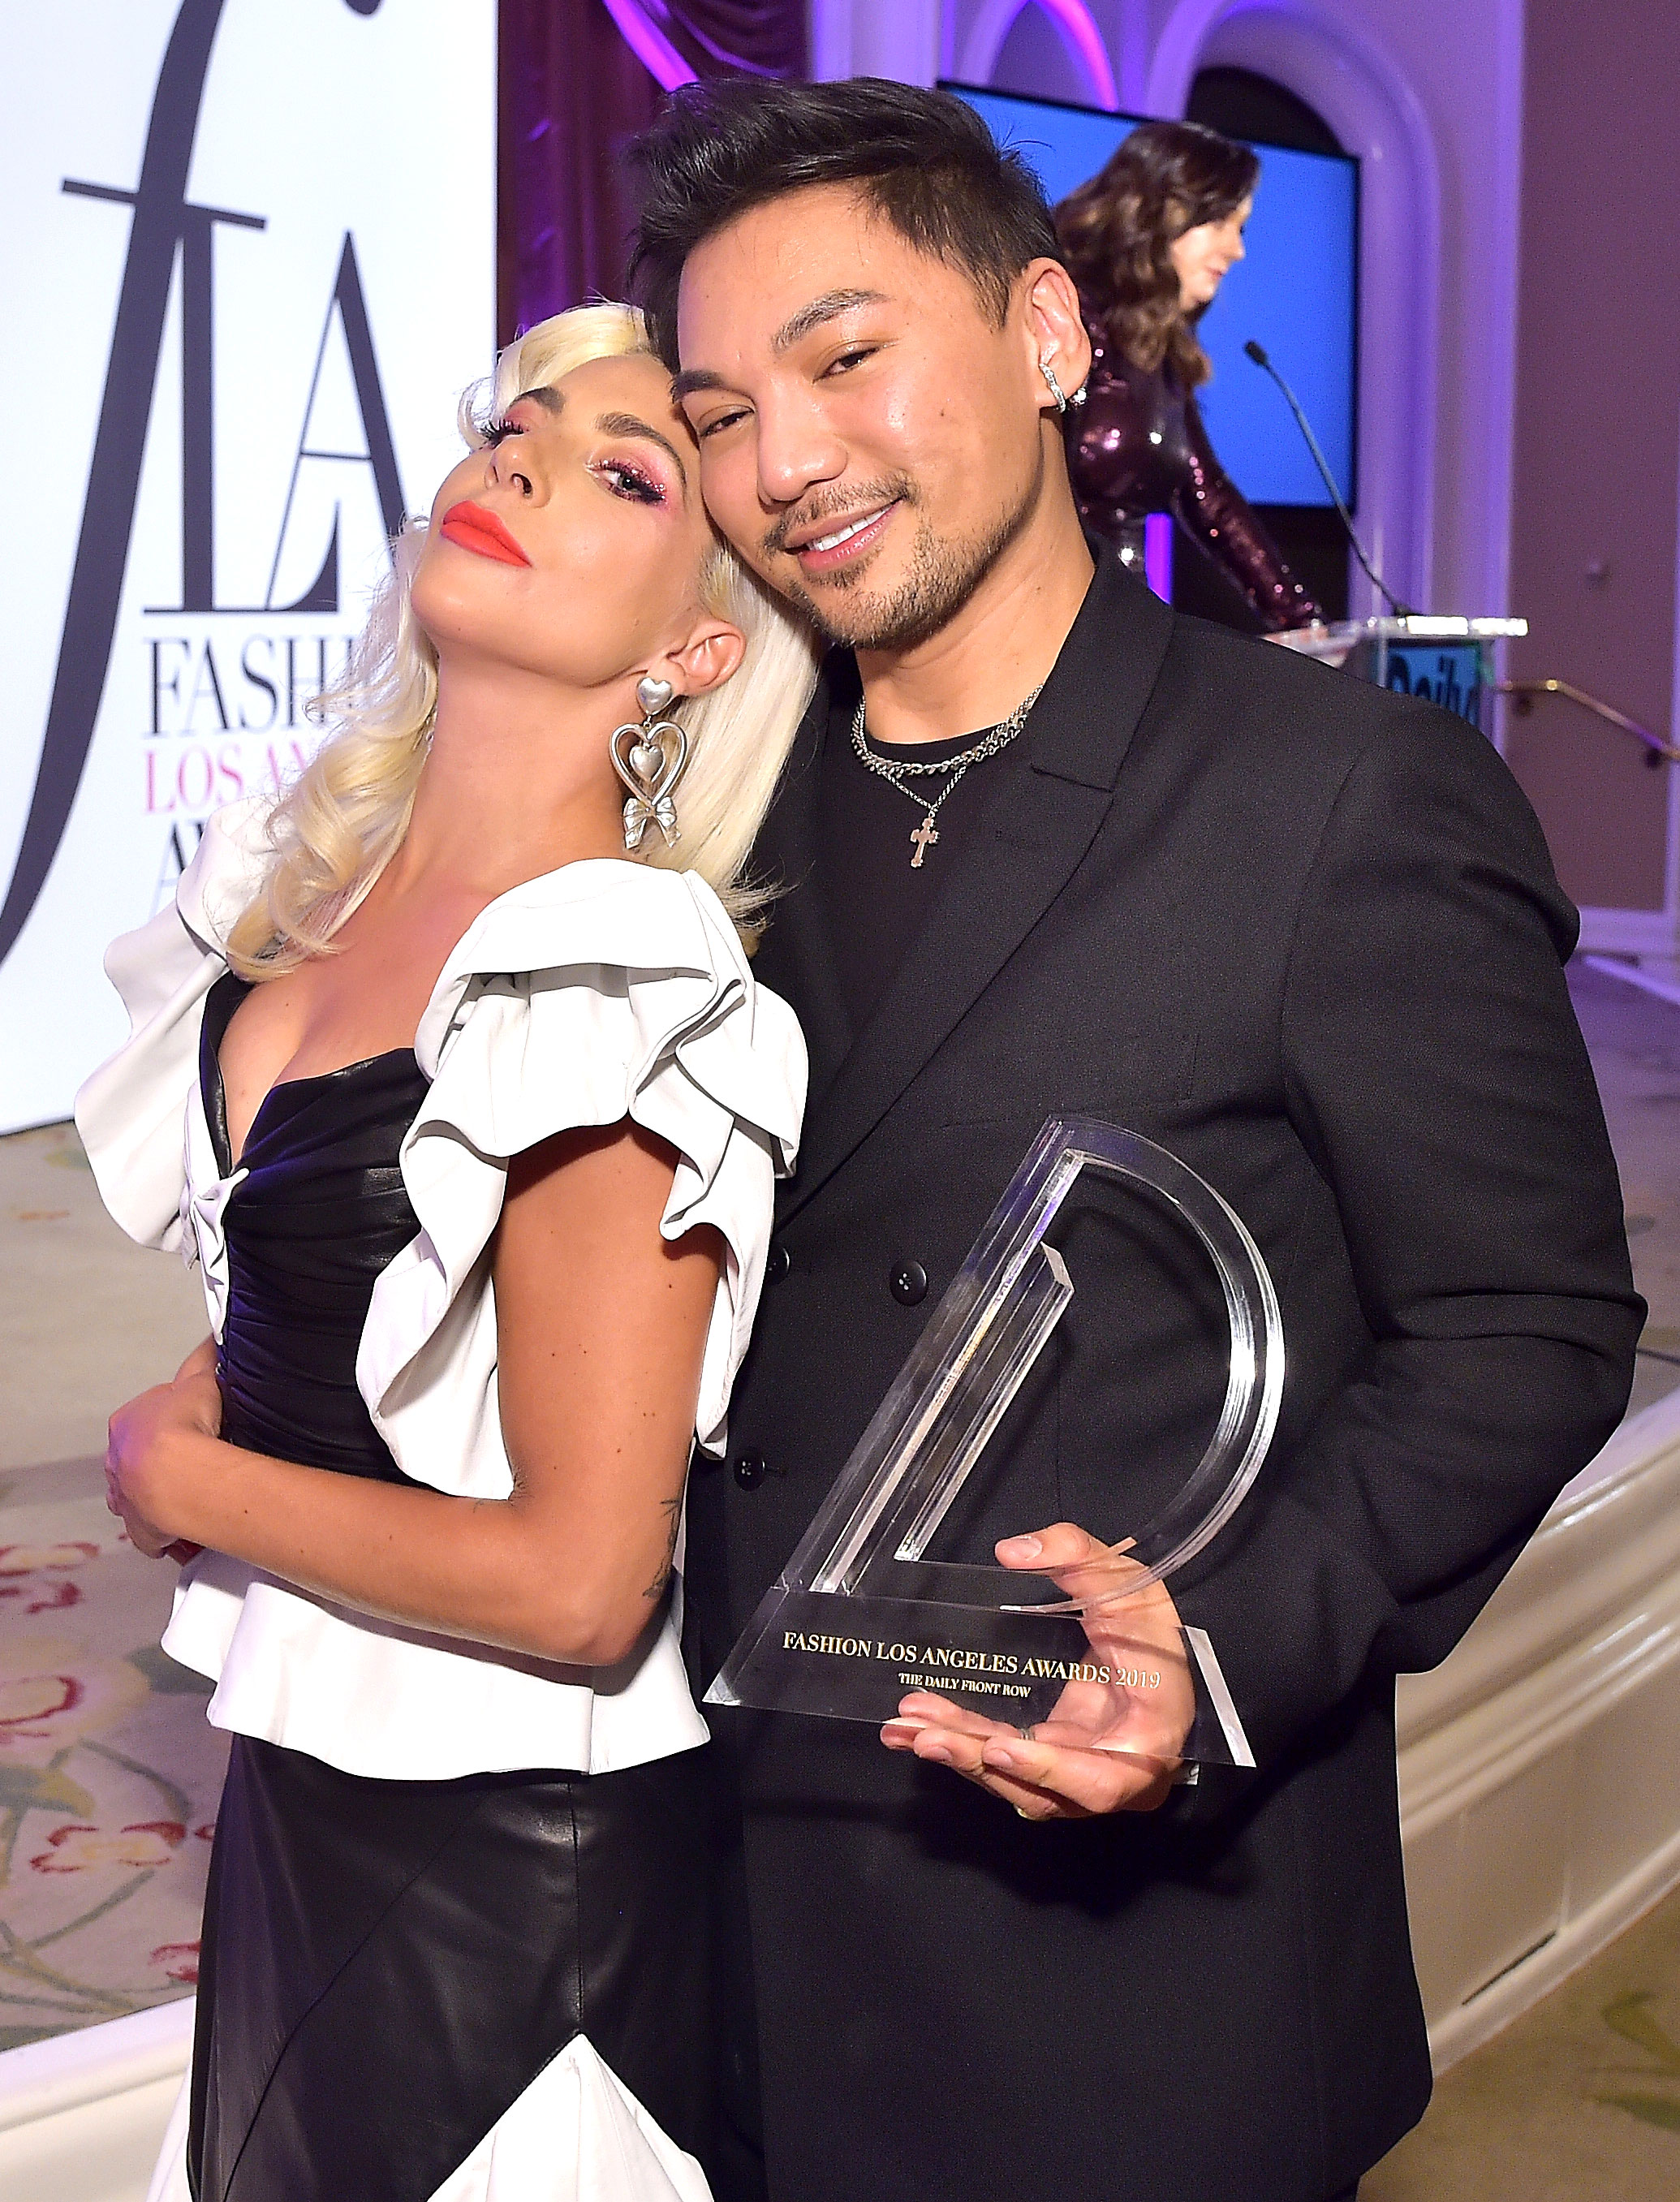 Lady Gaga Reveals Her Wig Secrets in Heartfelt Tribute to Her Hairstylist - Lady Gaga and Frederic Aspiras attend The Daily Front Row Fashion LA Awards 2019 on March 17, 2019 in Los Angeles, California.